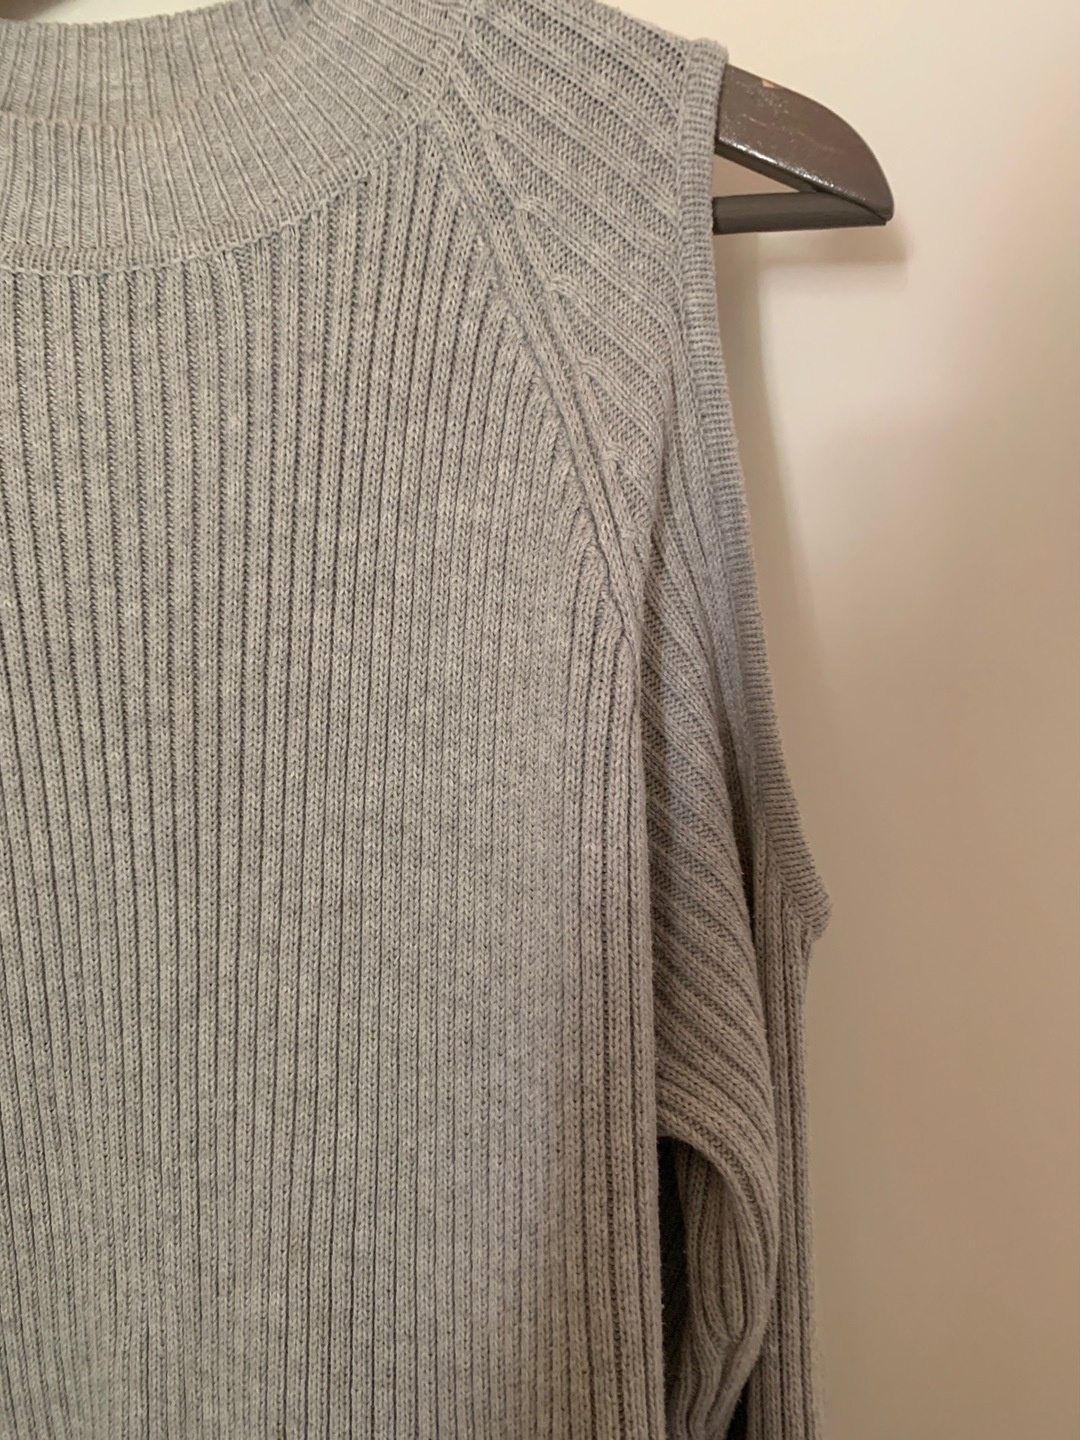 Women's jumpers & cardigans - DIVIDED BY H&M photo 3